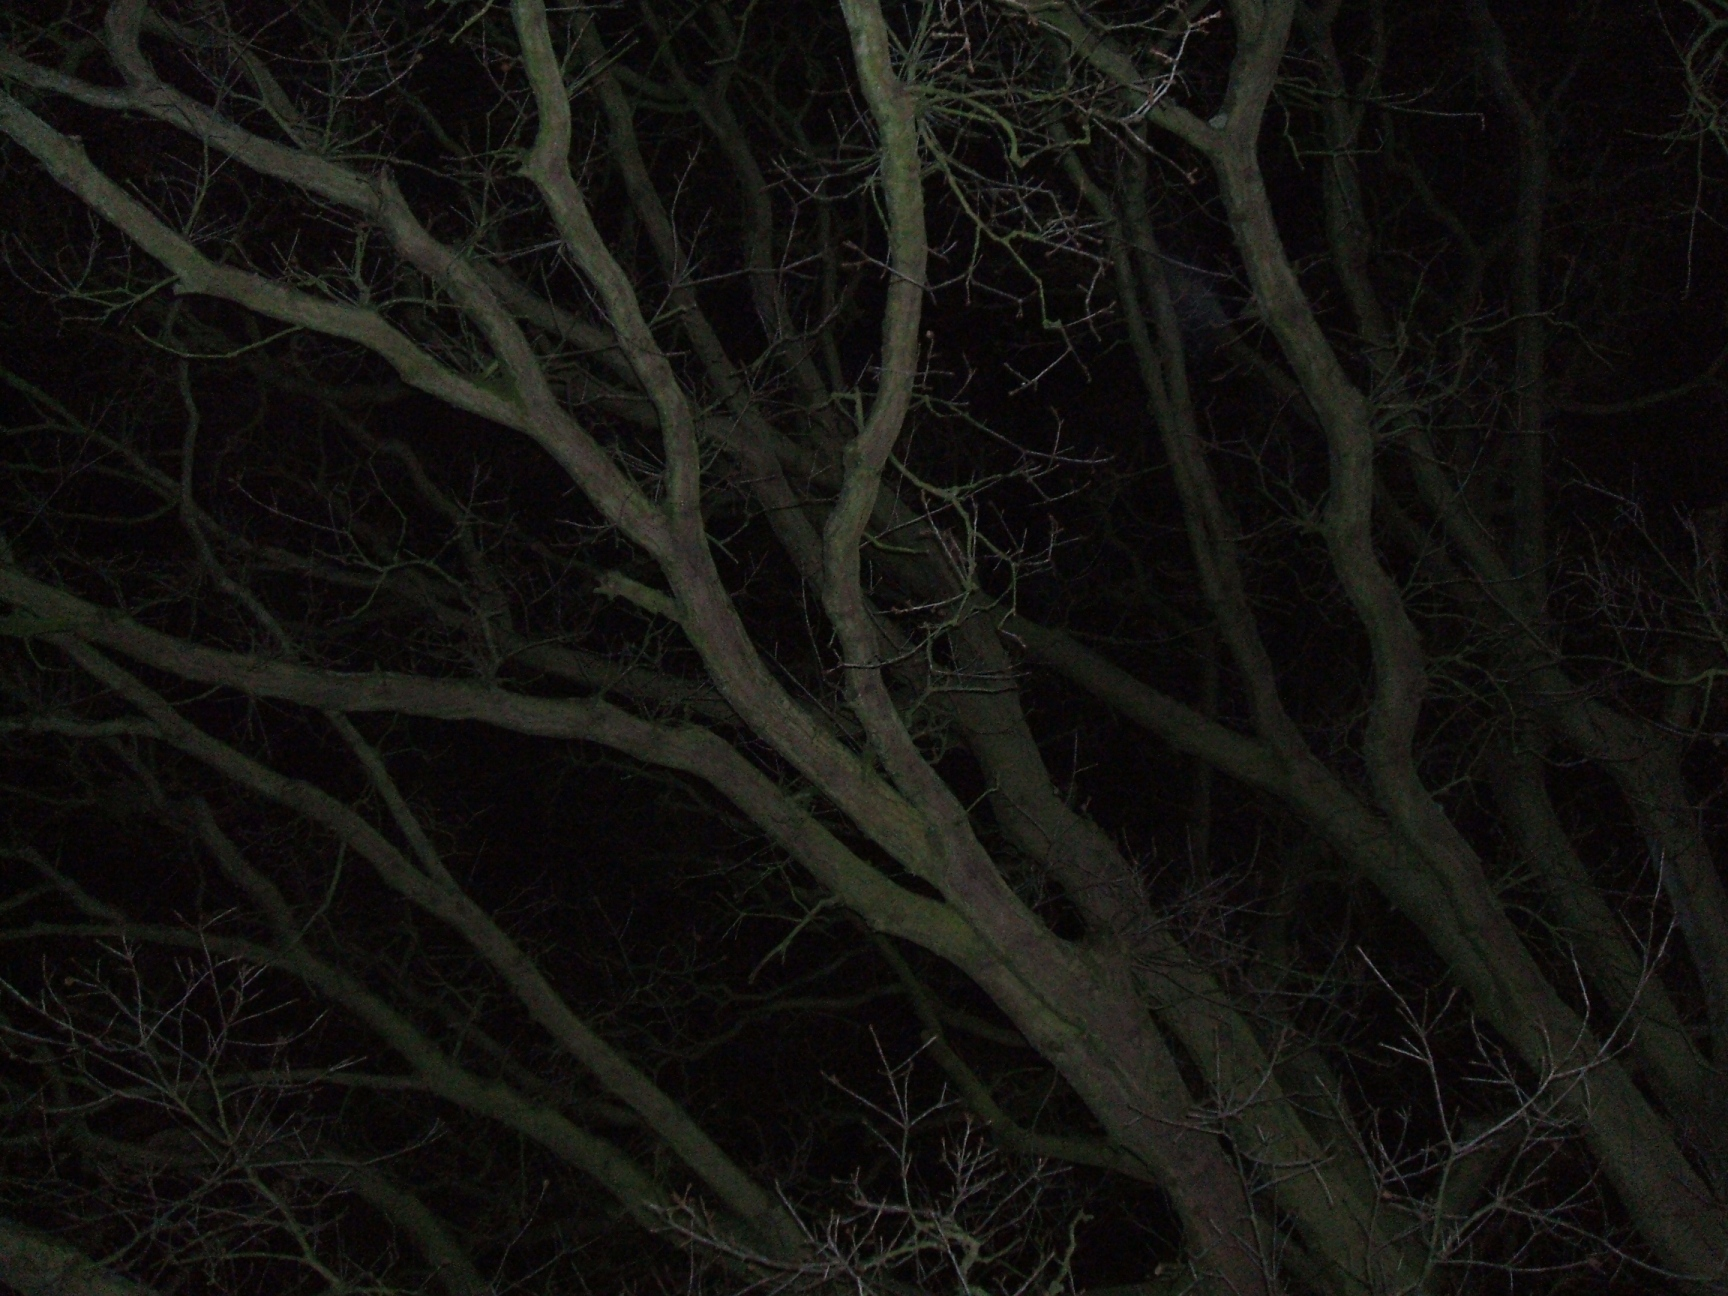 tree branches at night, Abstract, Black, Branches, Dark, HQ Photo